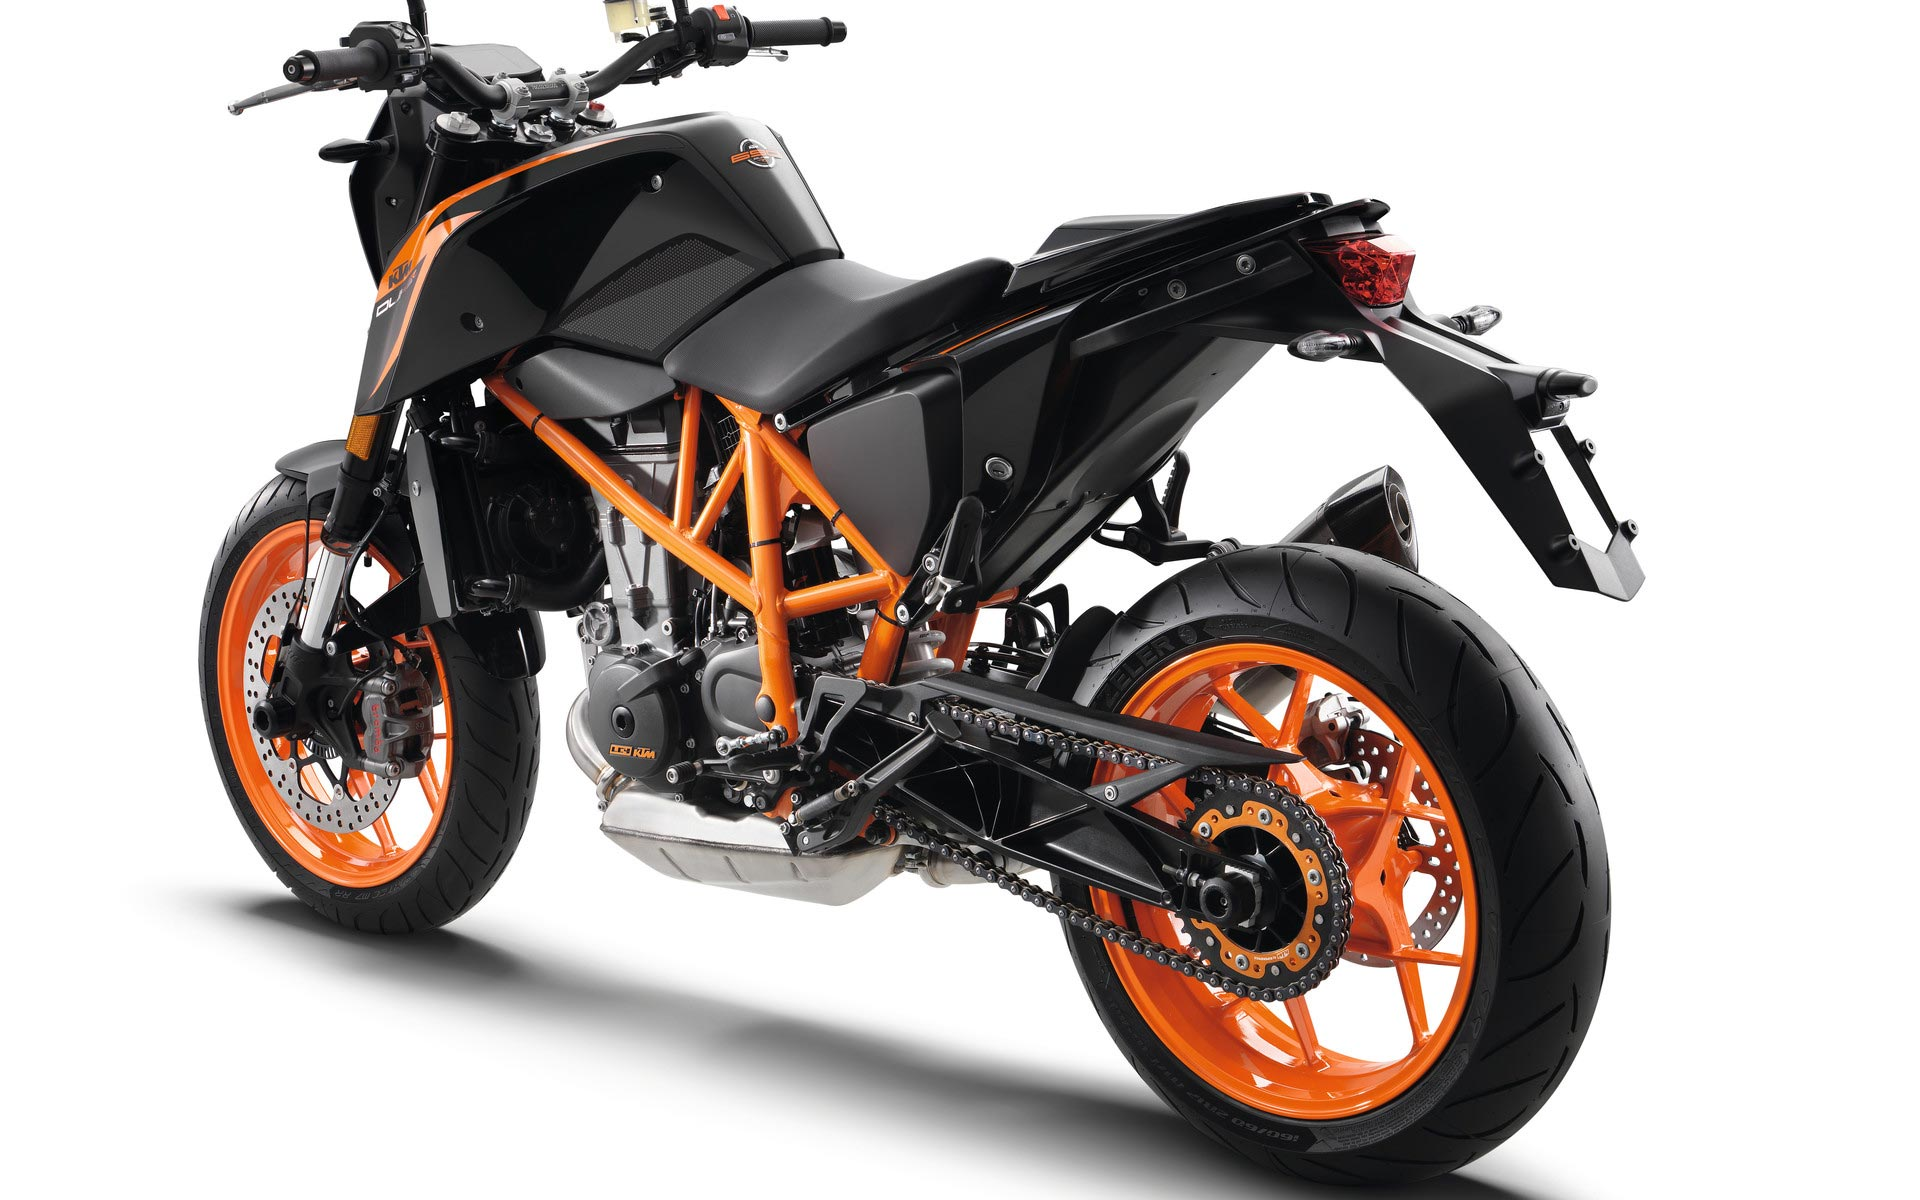 2017 KTM 690 Duke Review